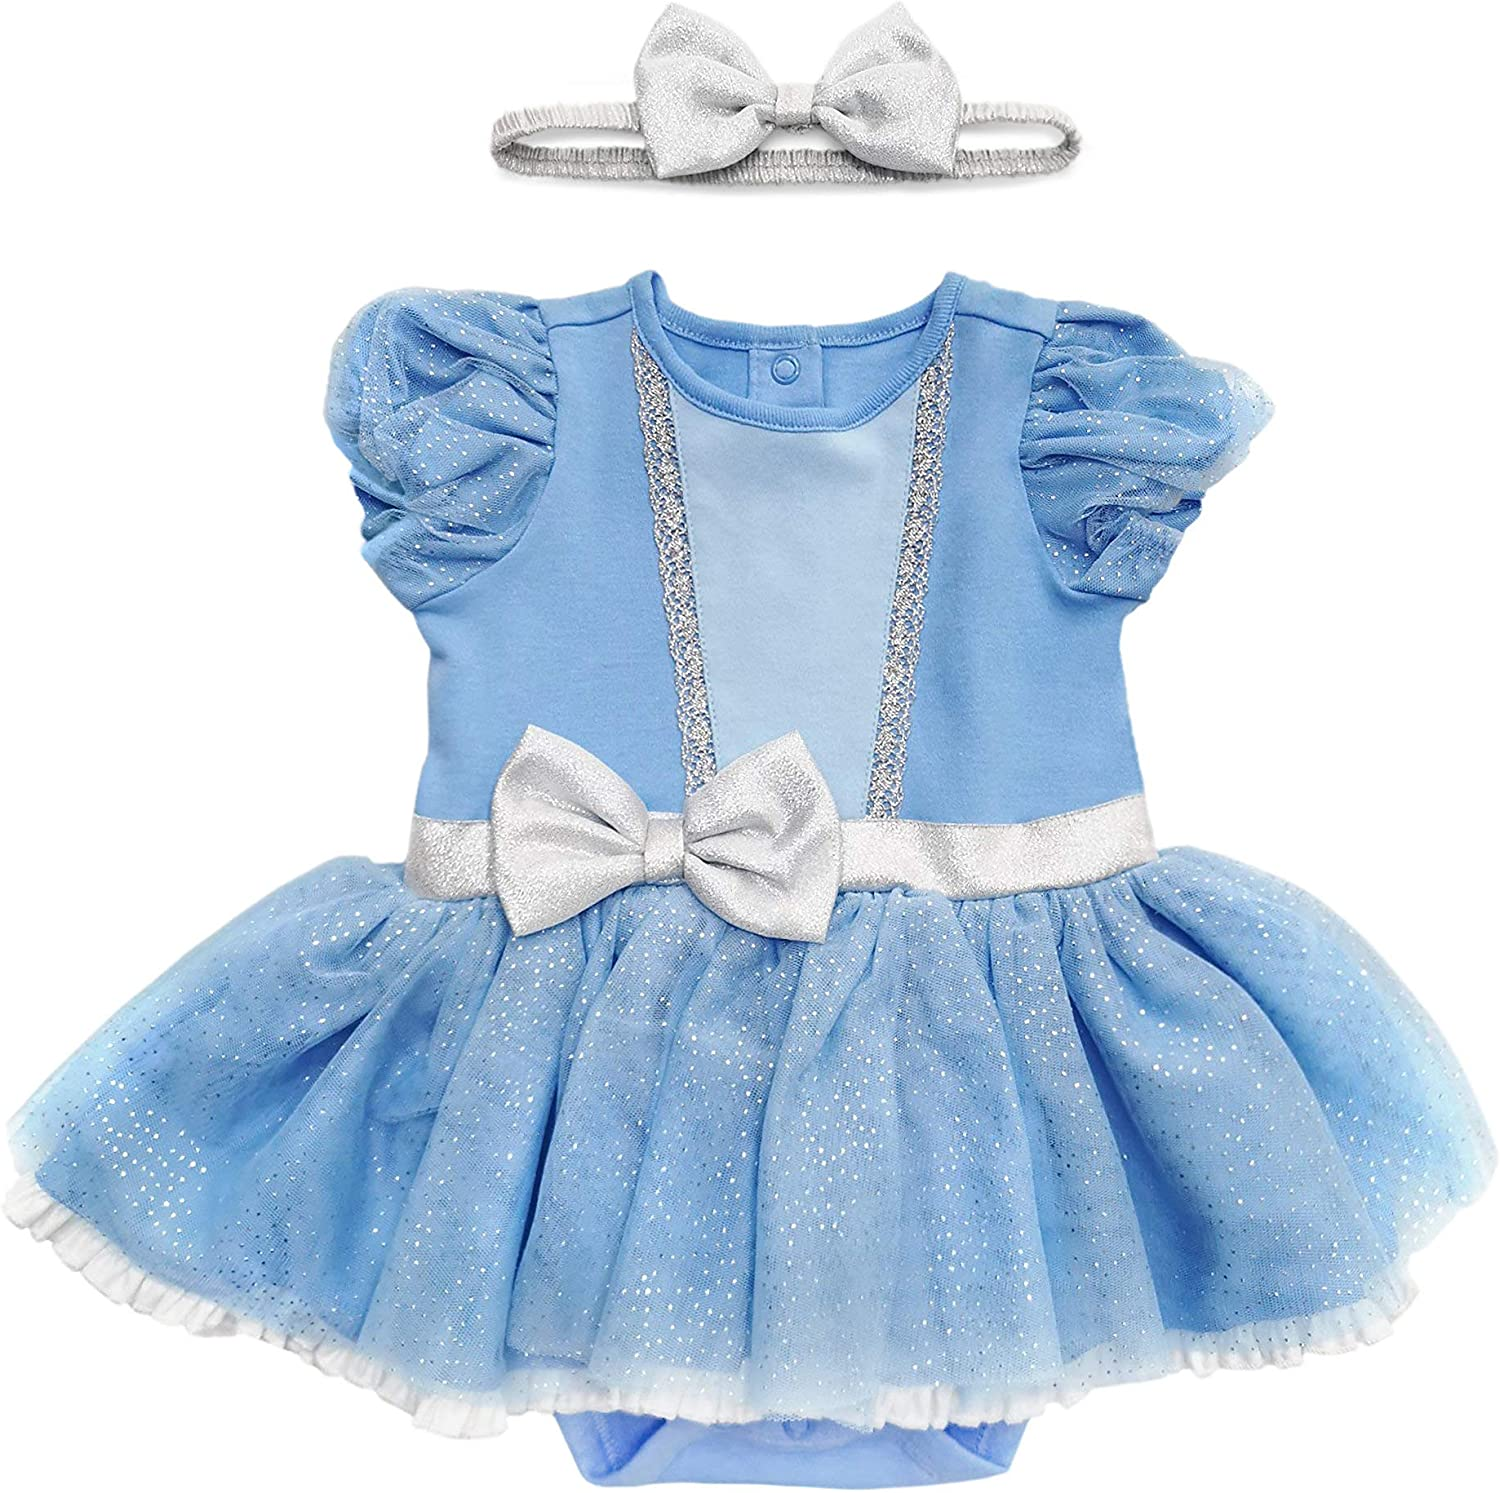 Disney Clothes 18 Month Baby Outfit Fairy Godmother Bodysuit